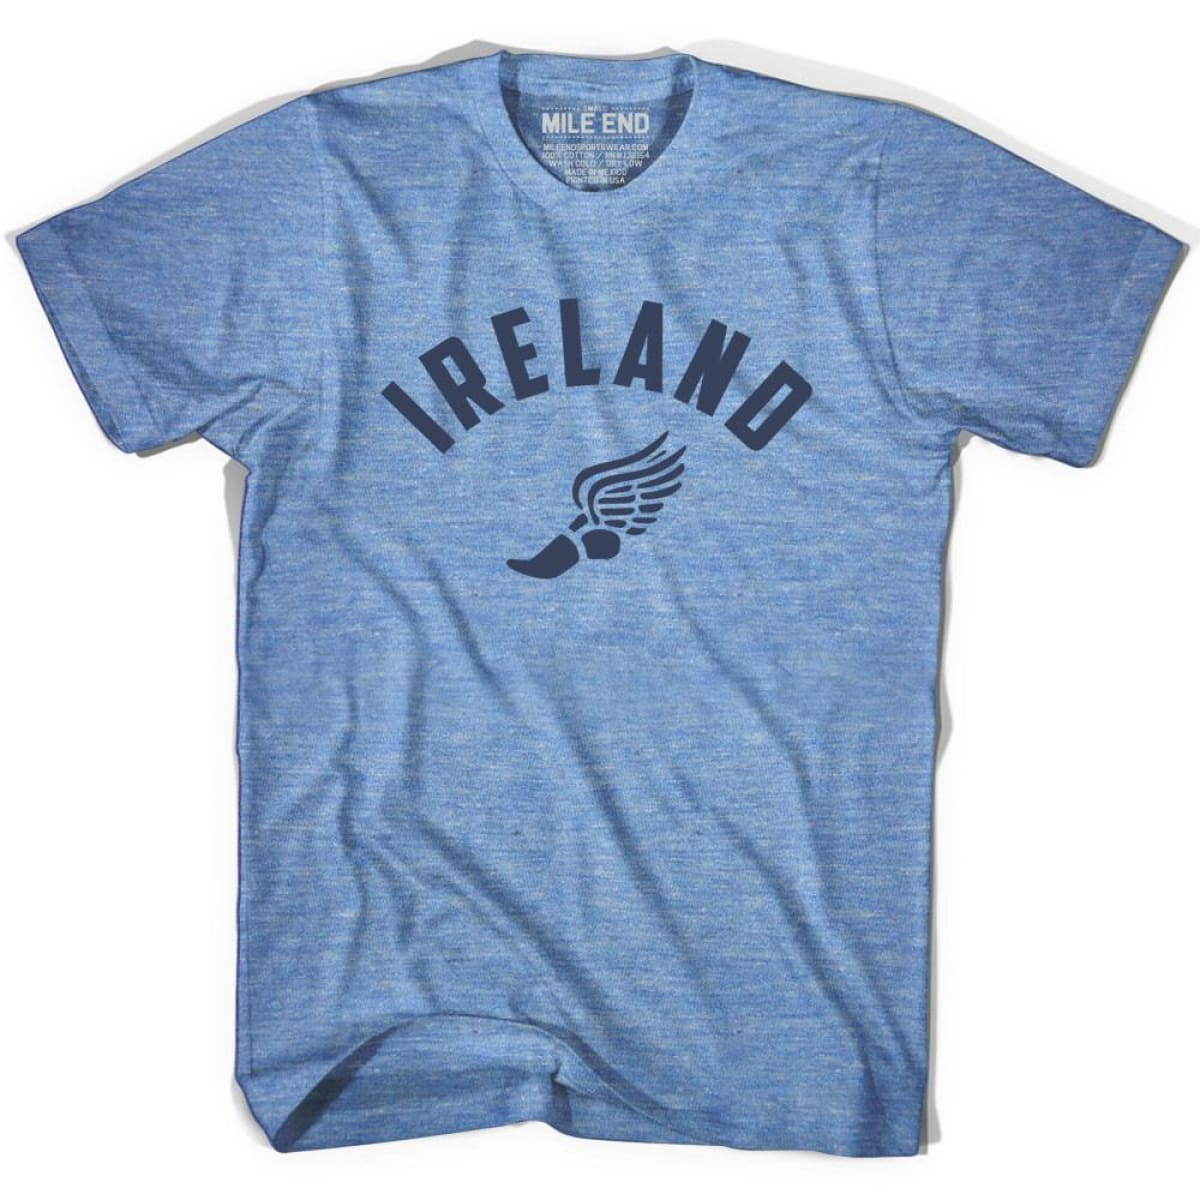 Ireland Track T-shirt - Athletic Blue / Adult X-Small - Mile End Track